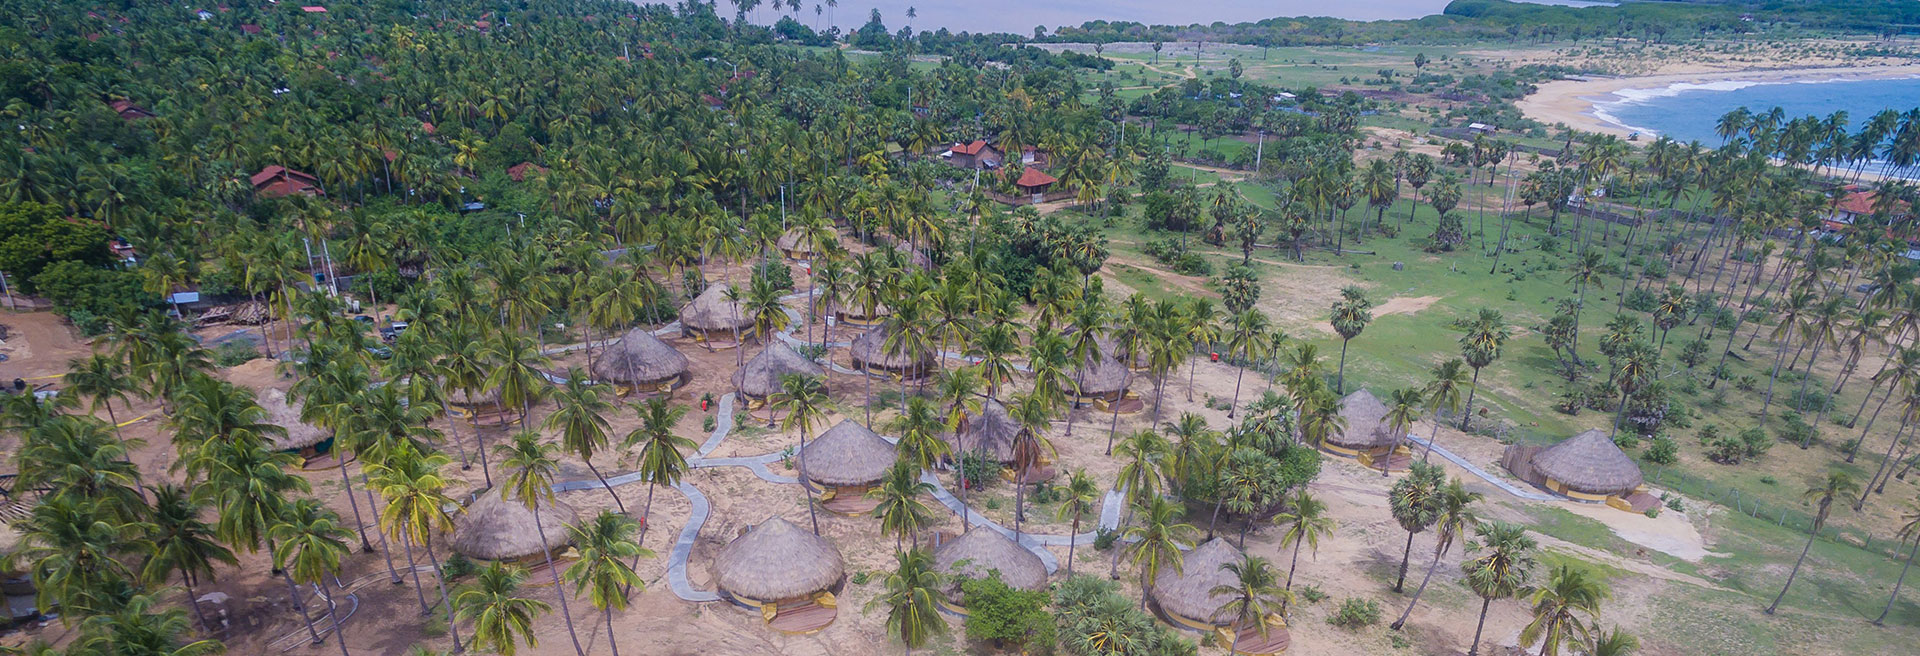 Areal view of the resort